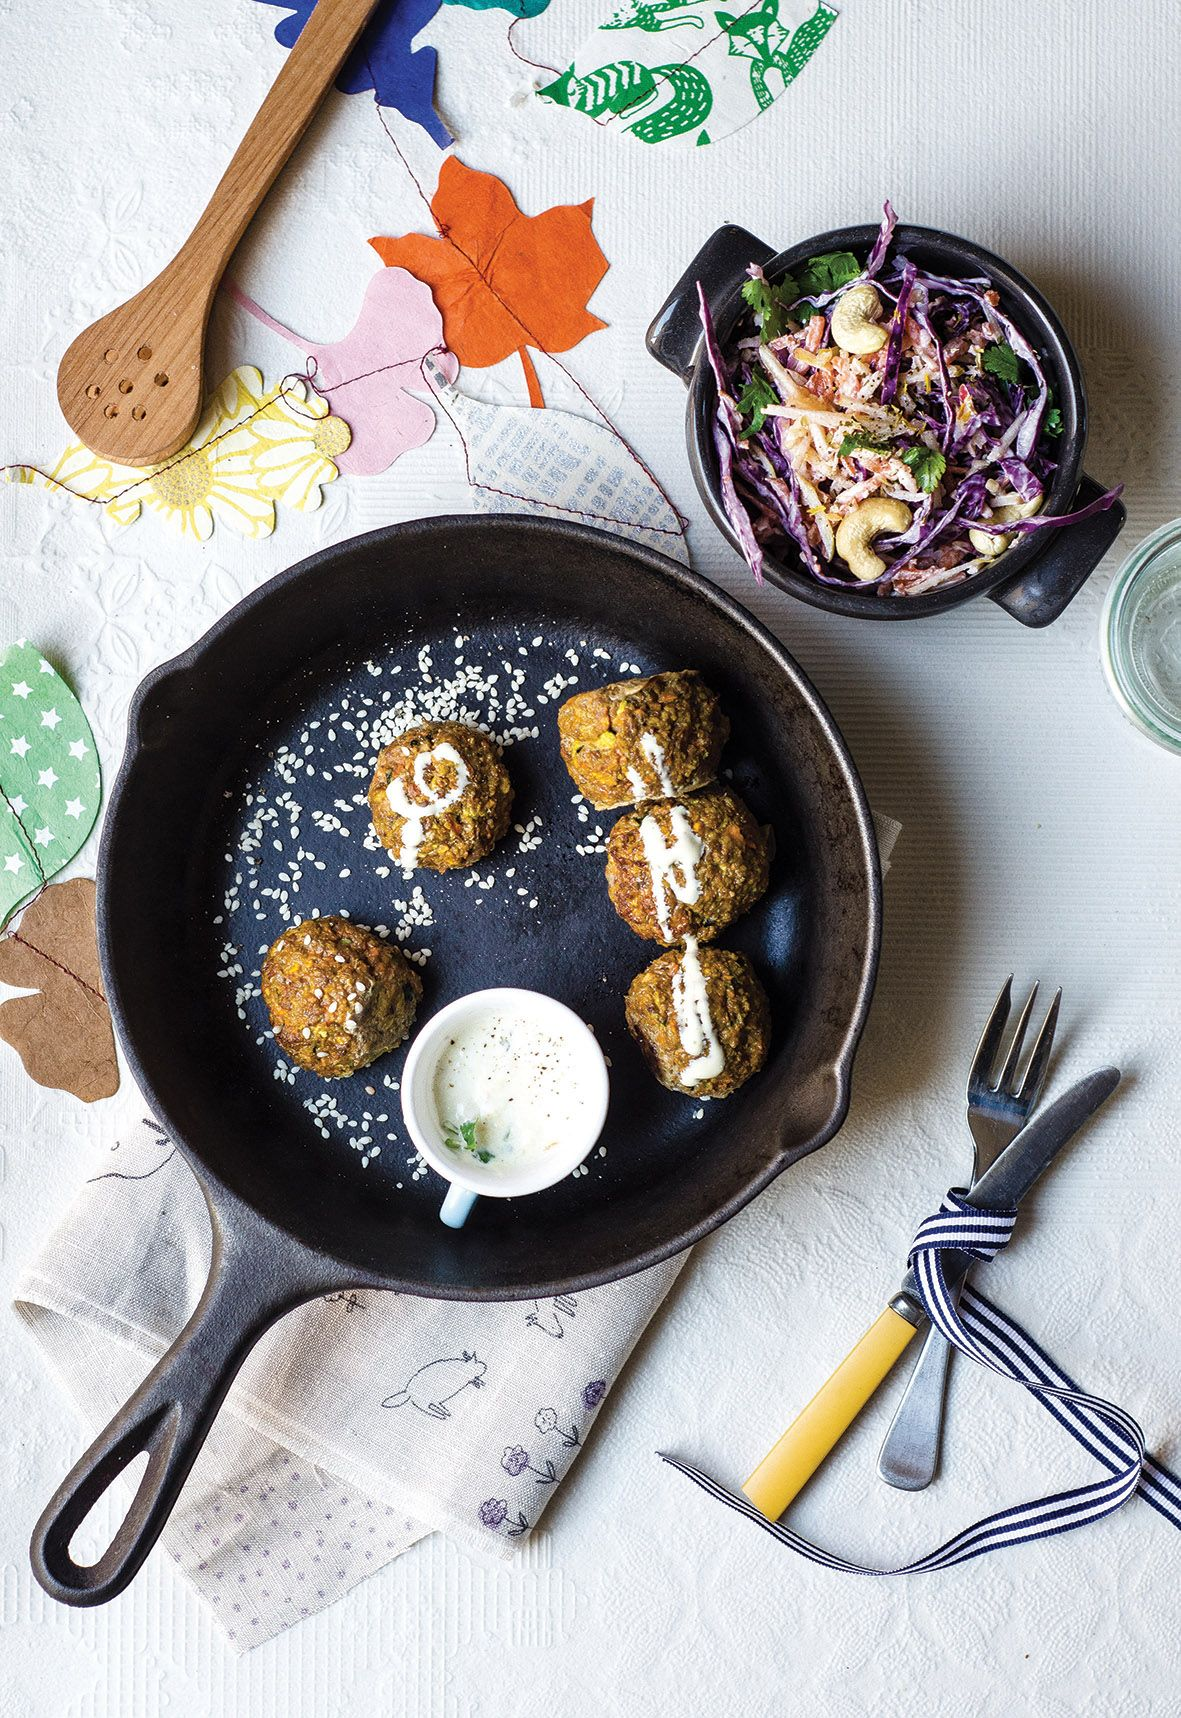 Veggie meatballs consider these not only perfectly lunchboxable but a little duo of recipe books filled with ideas on how to include more plants and supercharged foods on little forumfinder Choice Image